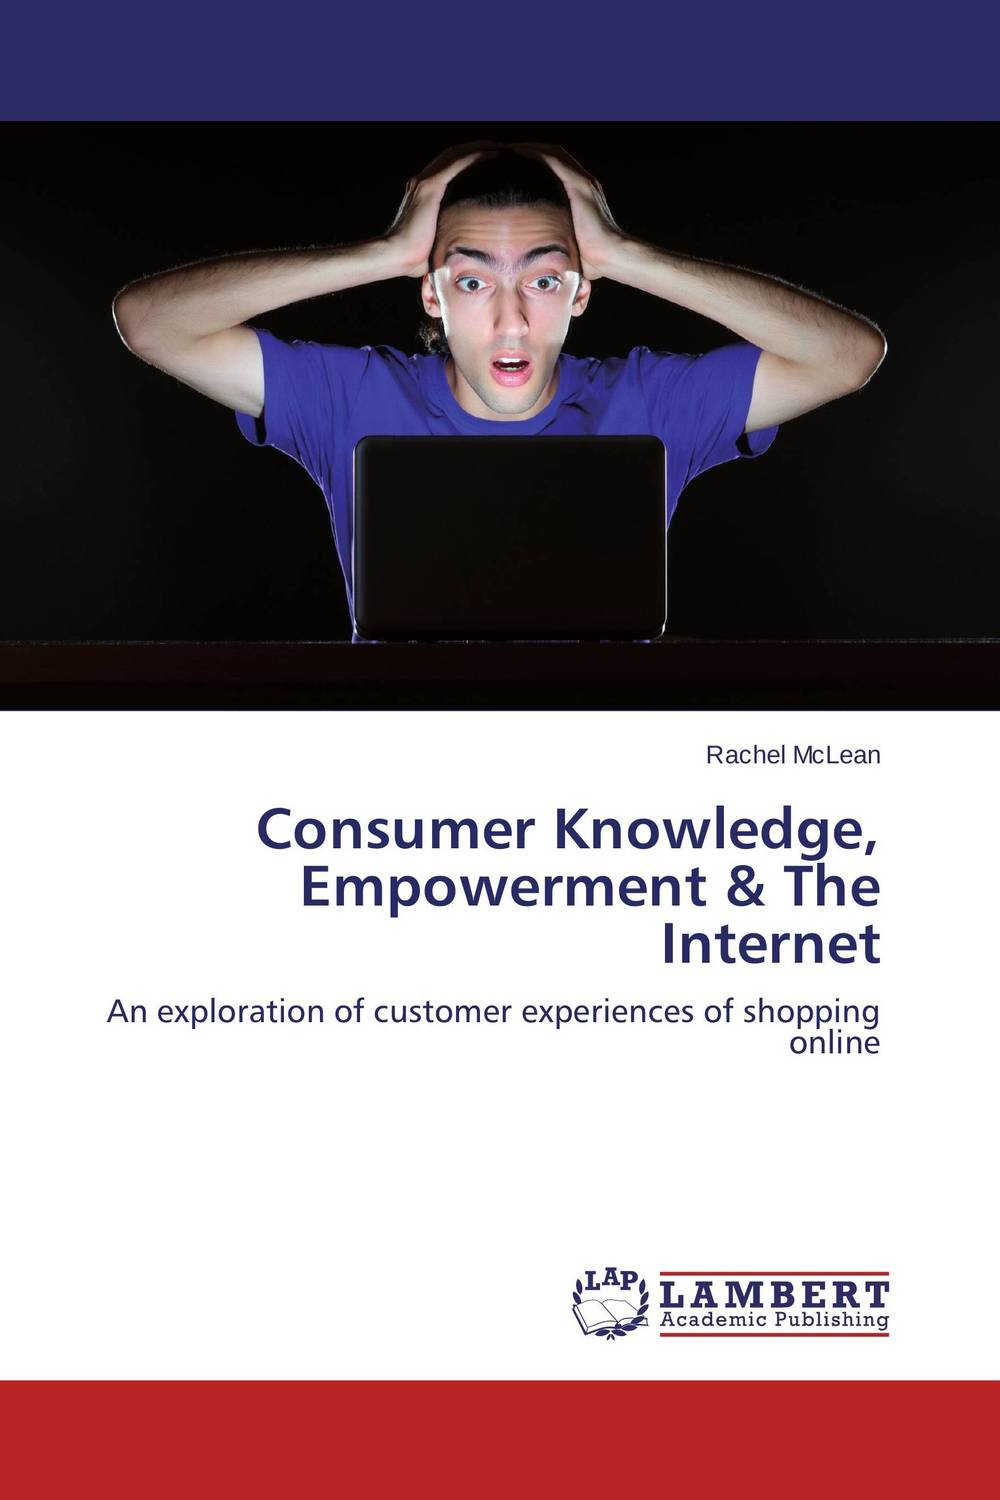 Consumer Knowledge, Empowerment & The Internet